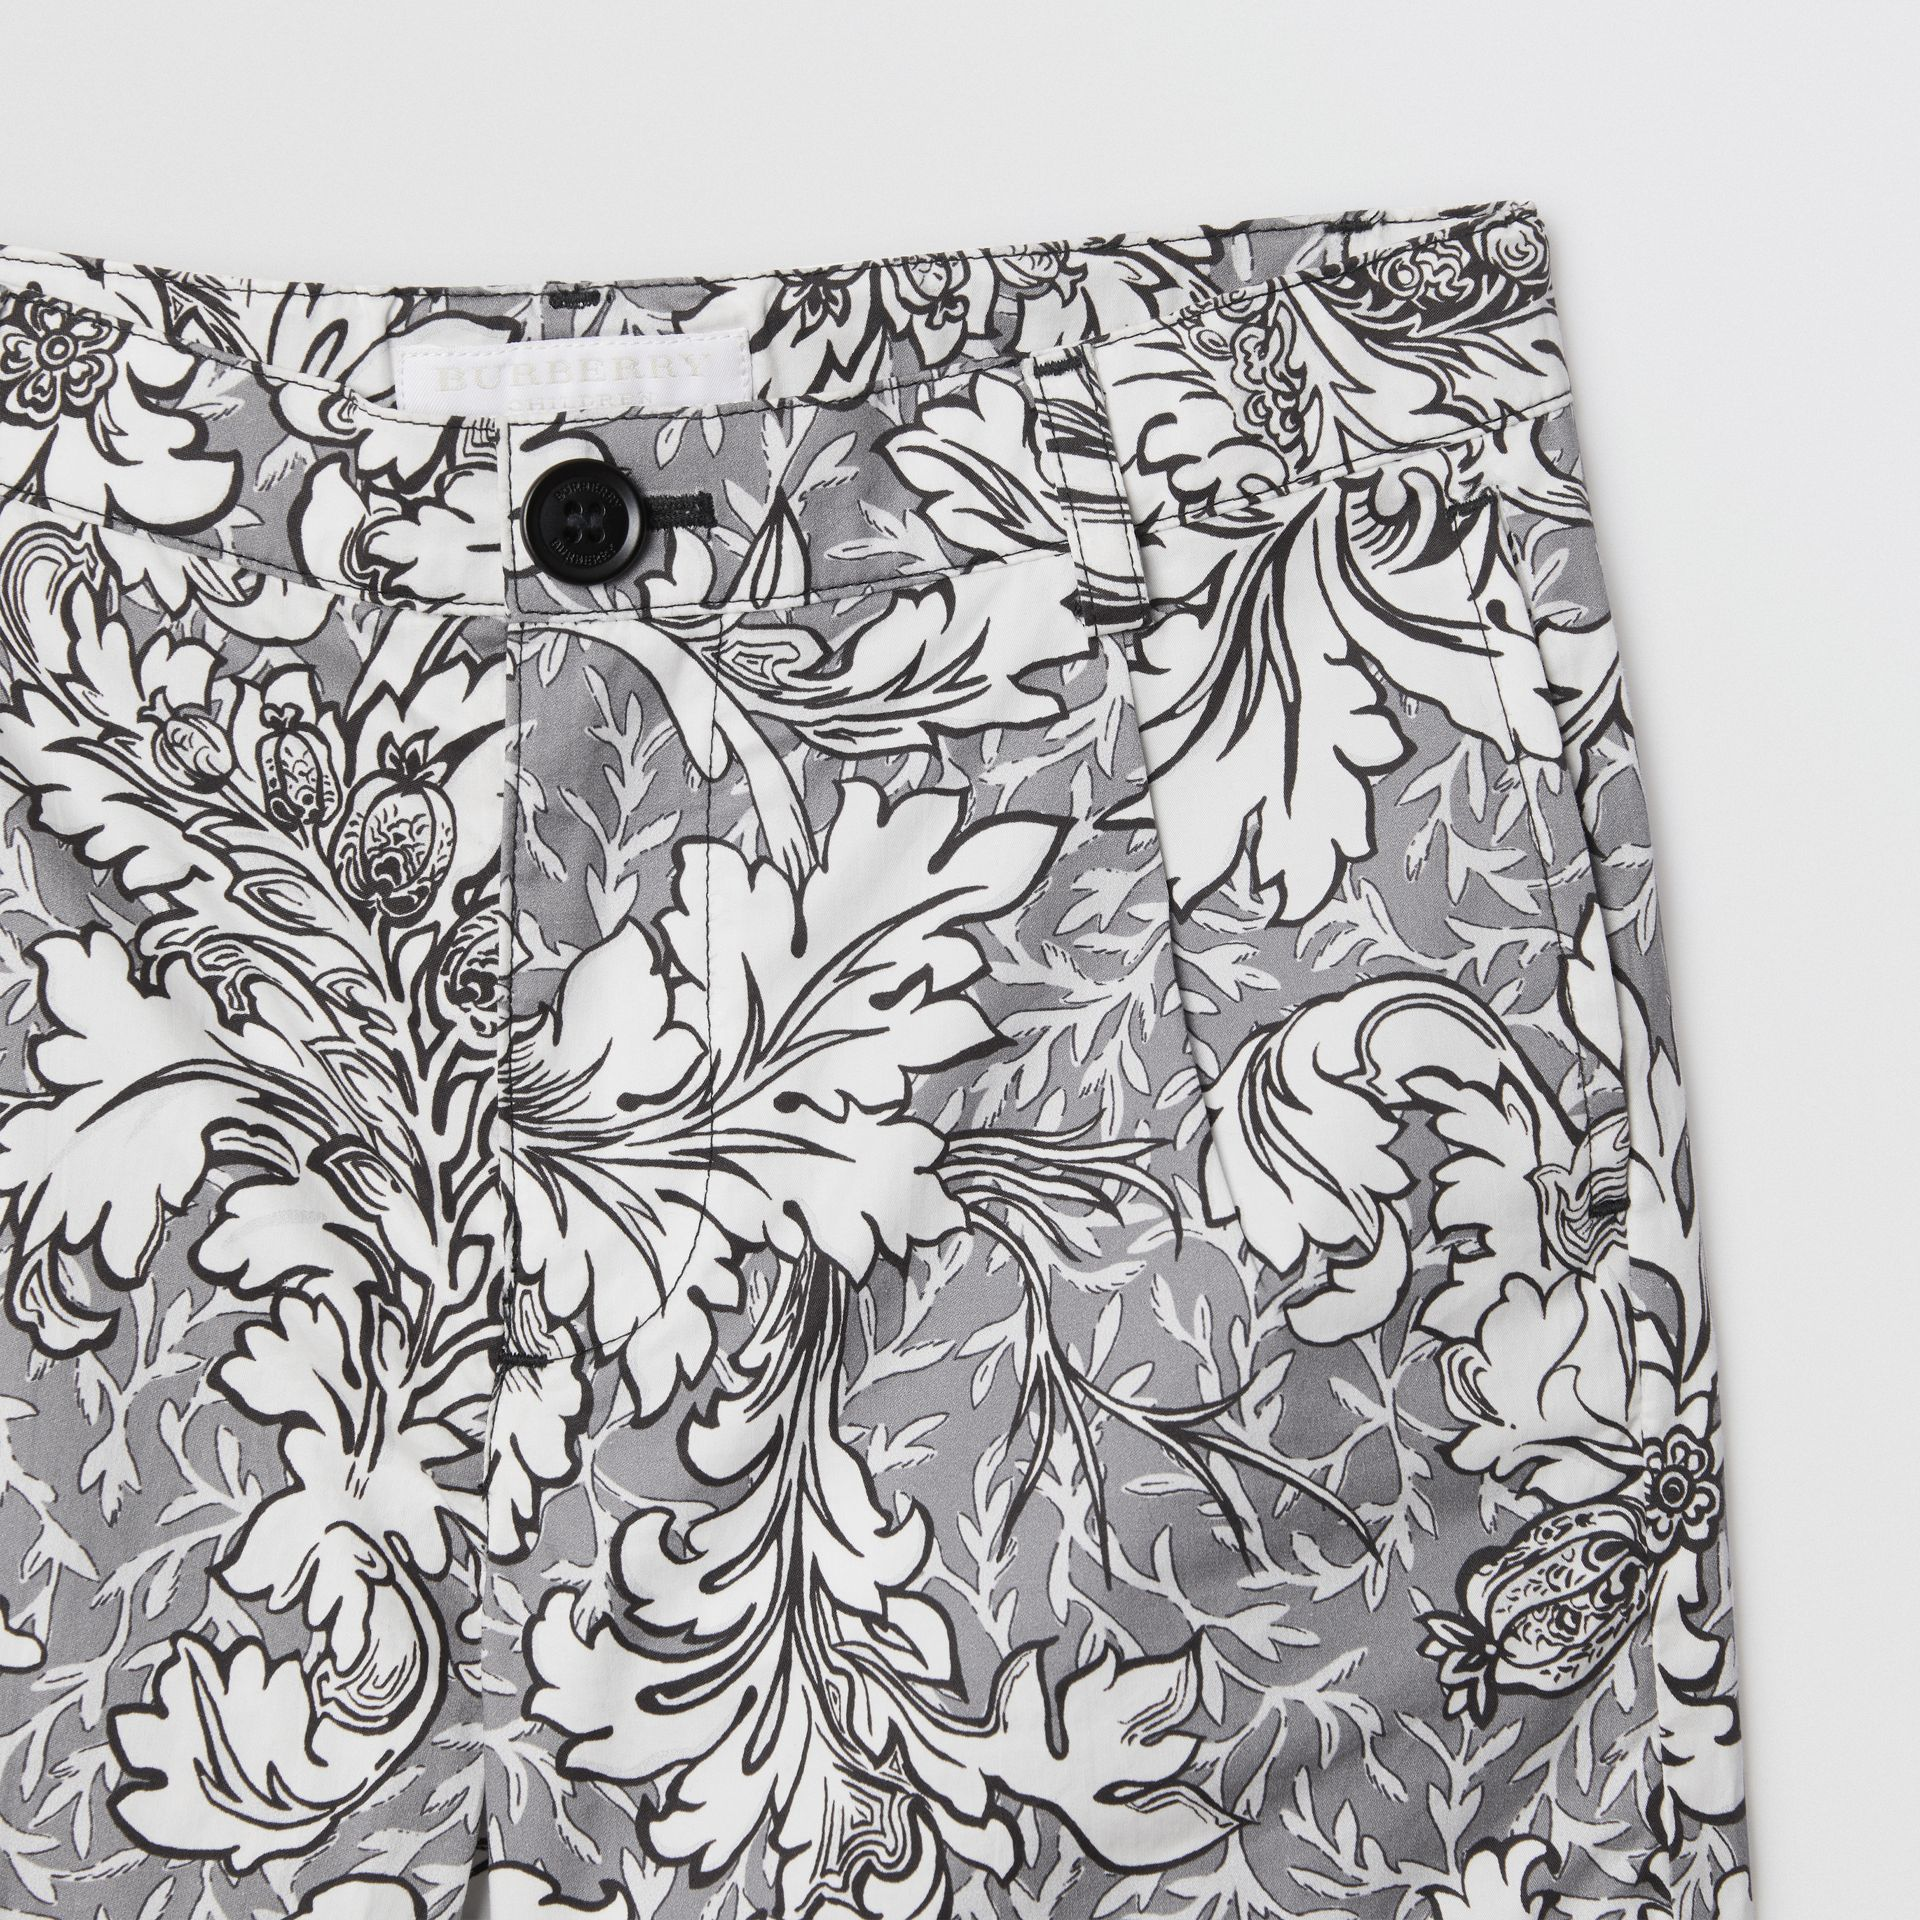 Floral Print Cotton Tailored Shorts in Mid Grey Melange | Burberry United Kingdom - gallery image 4